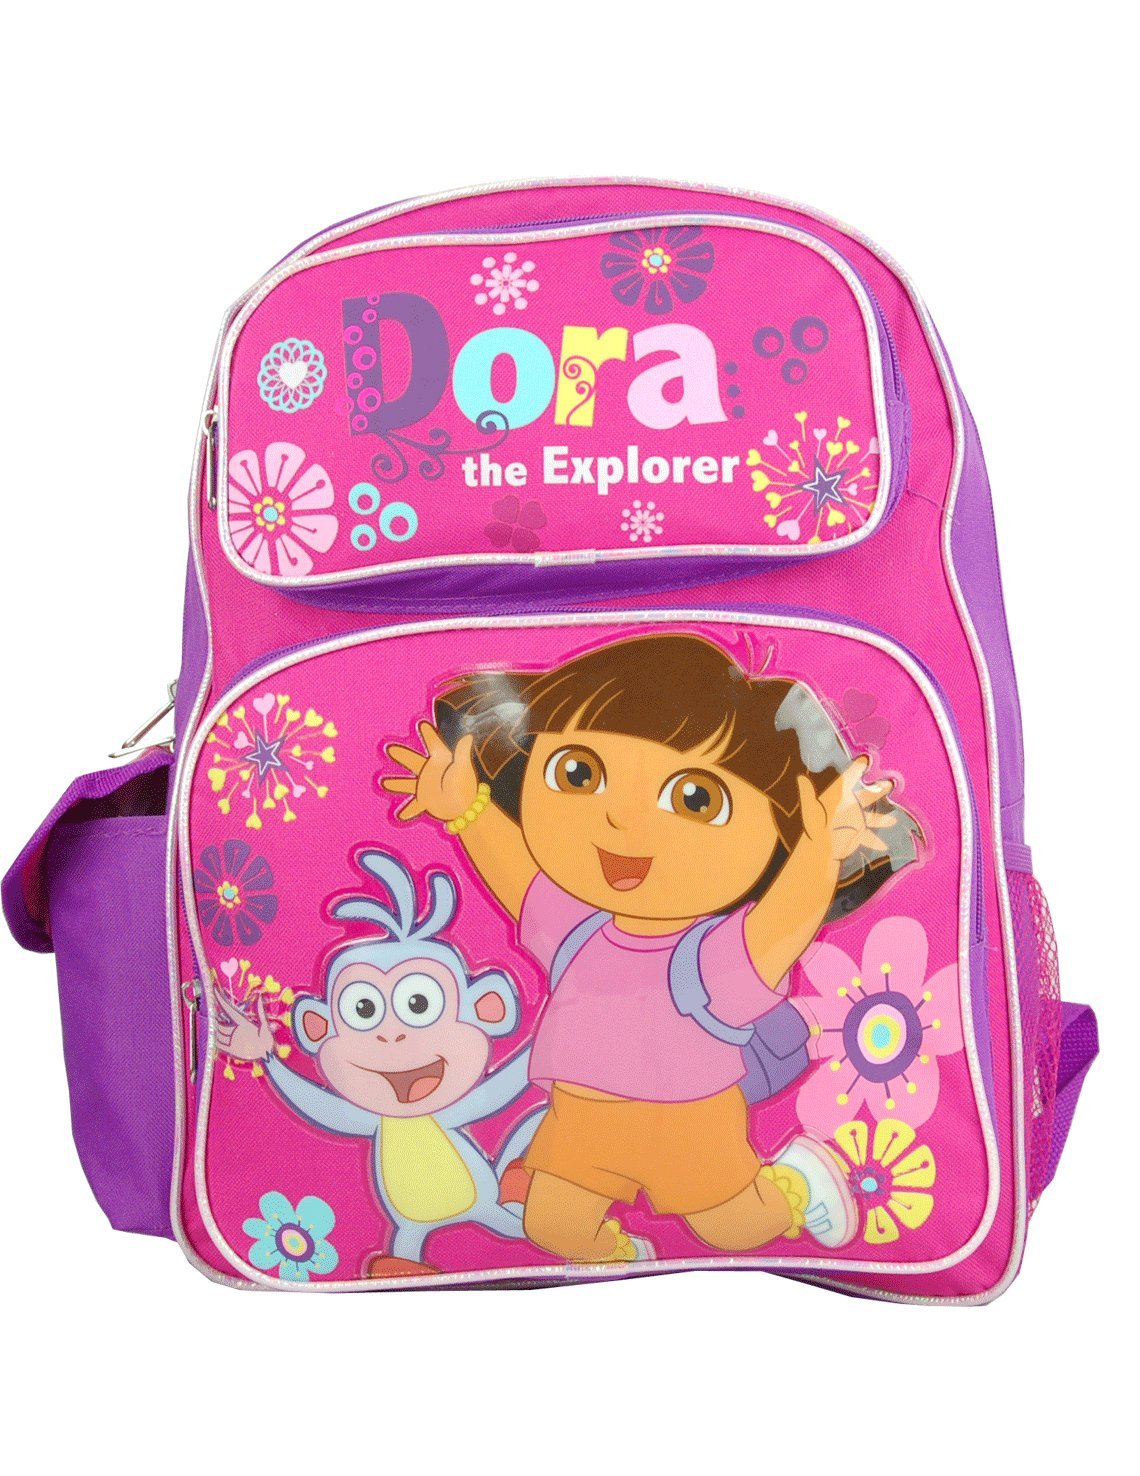 Backpack - Dora the Explorer - Jump with Boots Large Bag New 618698   B00D4WBRLW